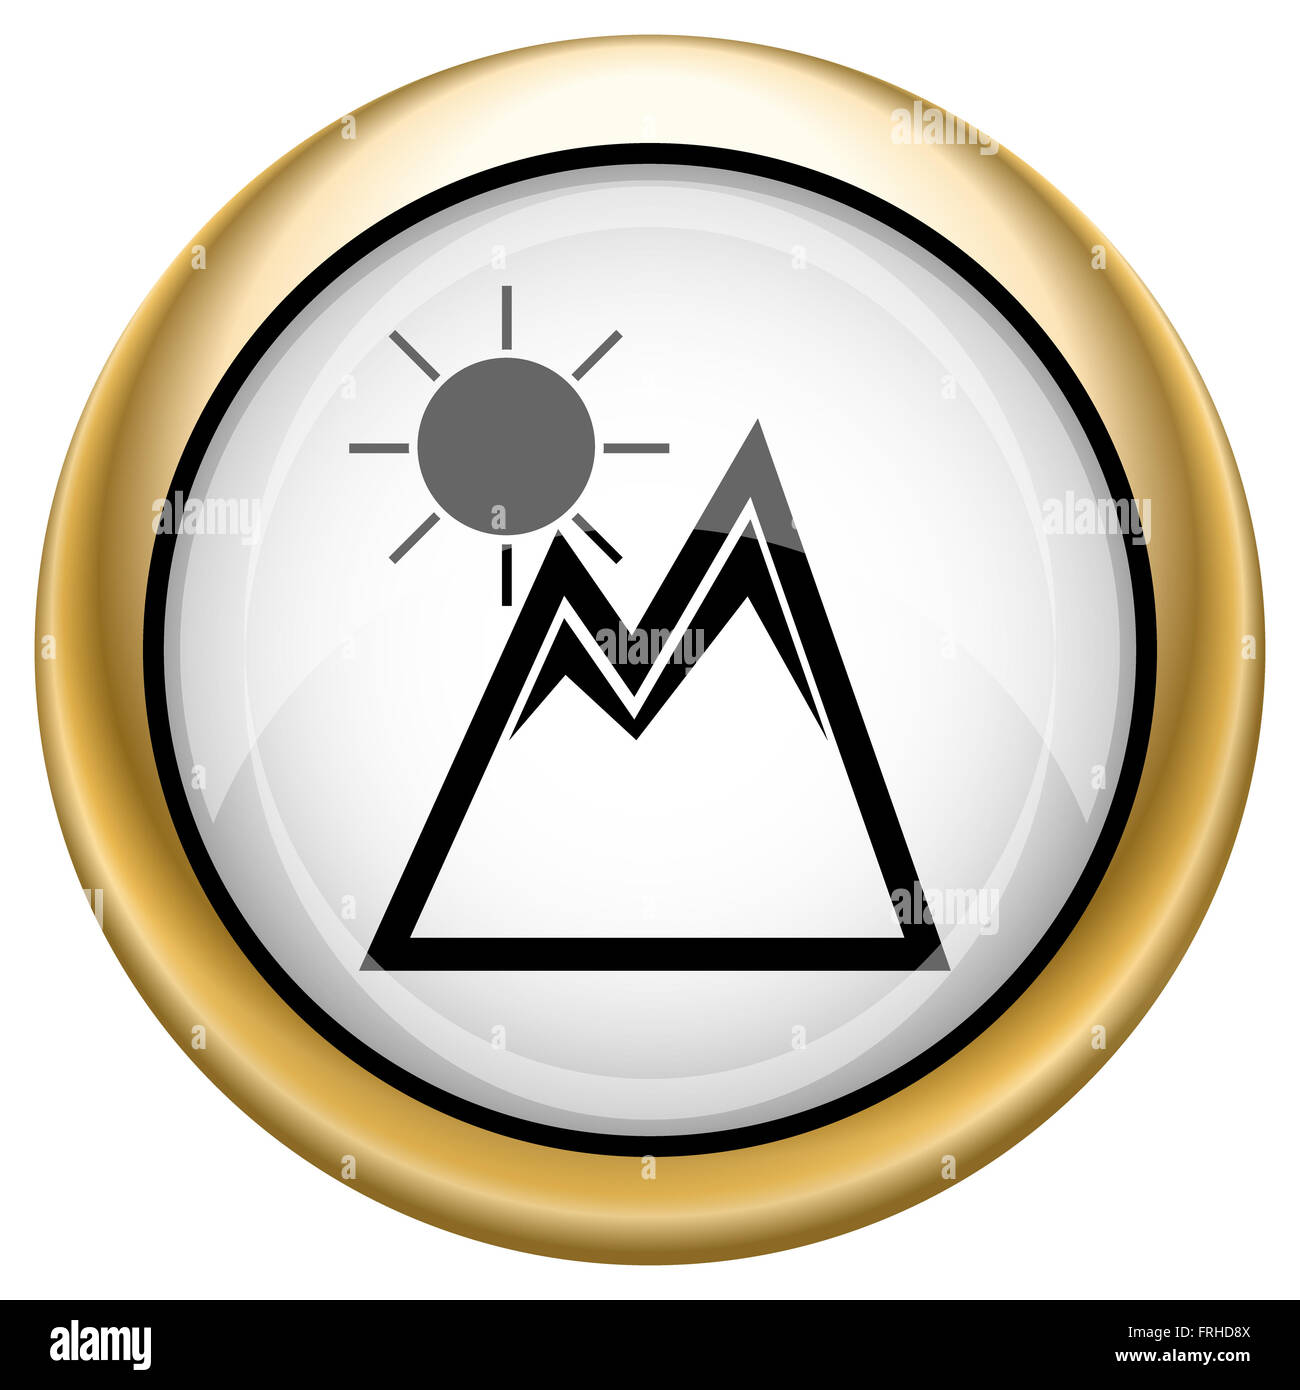 Shiny glossy icon with black design on white and gold background - Stock Image